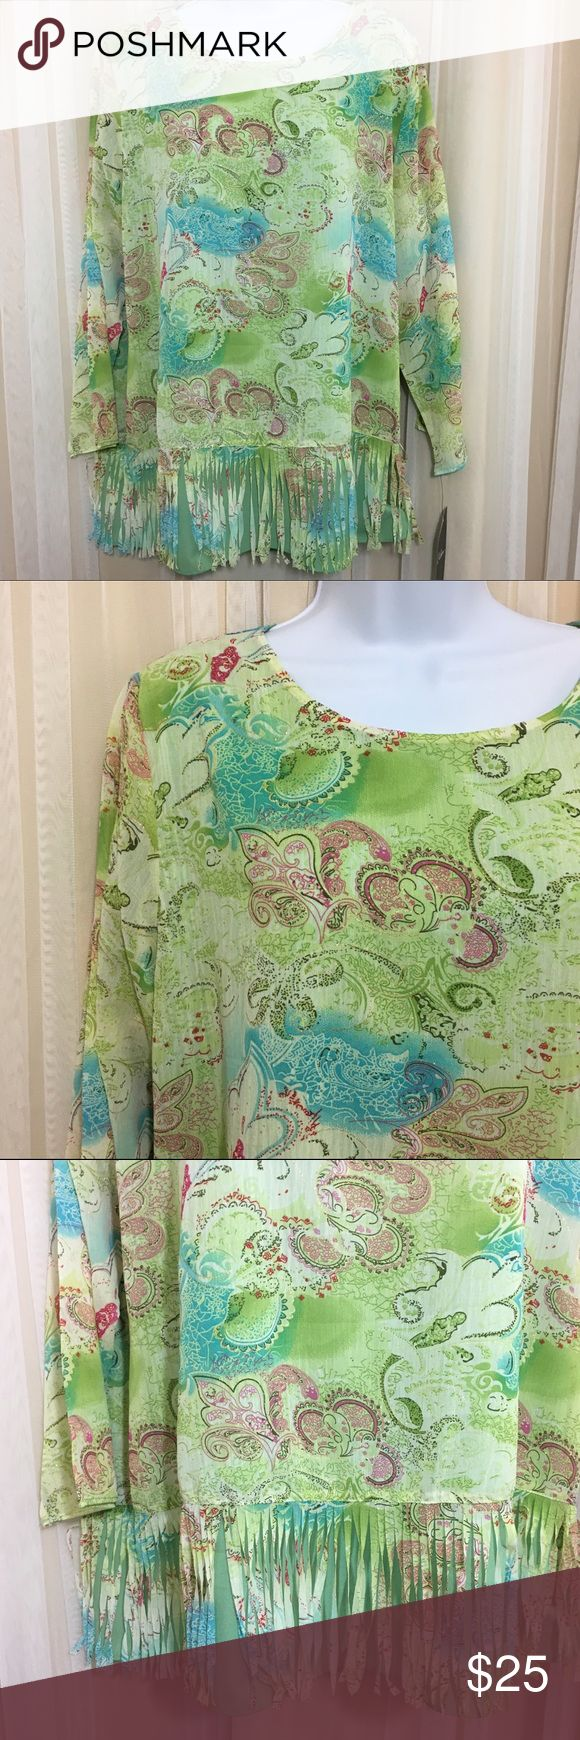 """Calessa Hi Lo Fringe Blouse Floral/paisley Calessa Women's Hi Lo Fringe Blouse. Floral/paisley design. Long Sleeves are sheer. Fully lined. Colors of green, blue, and pink, w/ sparkling gold weaved throughout. Size Medium. 100% Polyester.   New With Tags. Excellent condition, no flaws. See pictures for details. All measurements are taken with item laying flat. Measurements: Chest (underarm to underarm)-  22"""" Length (back neck seam to bottom)-  29"""" Sleeve - 21"""" 📦📦 Fast Shipping. I strive…"""